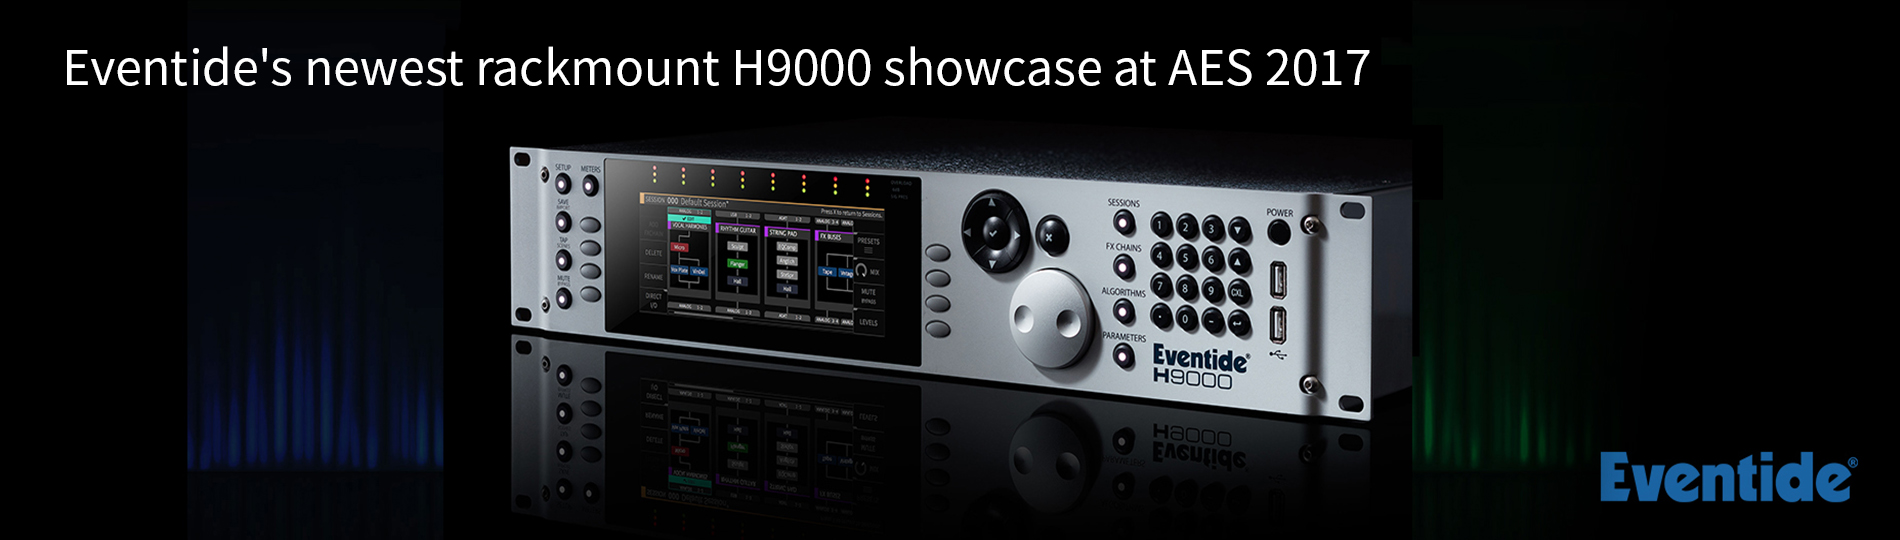 Announcing Eventide's new H9000 rack mount effects unit!